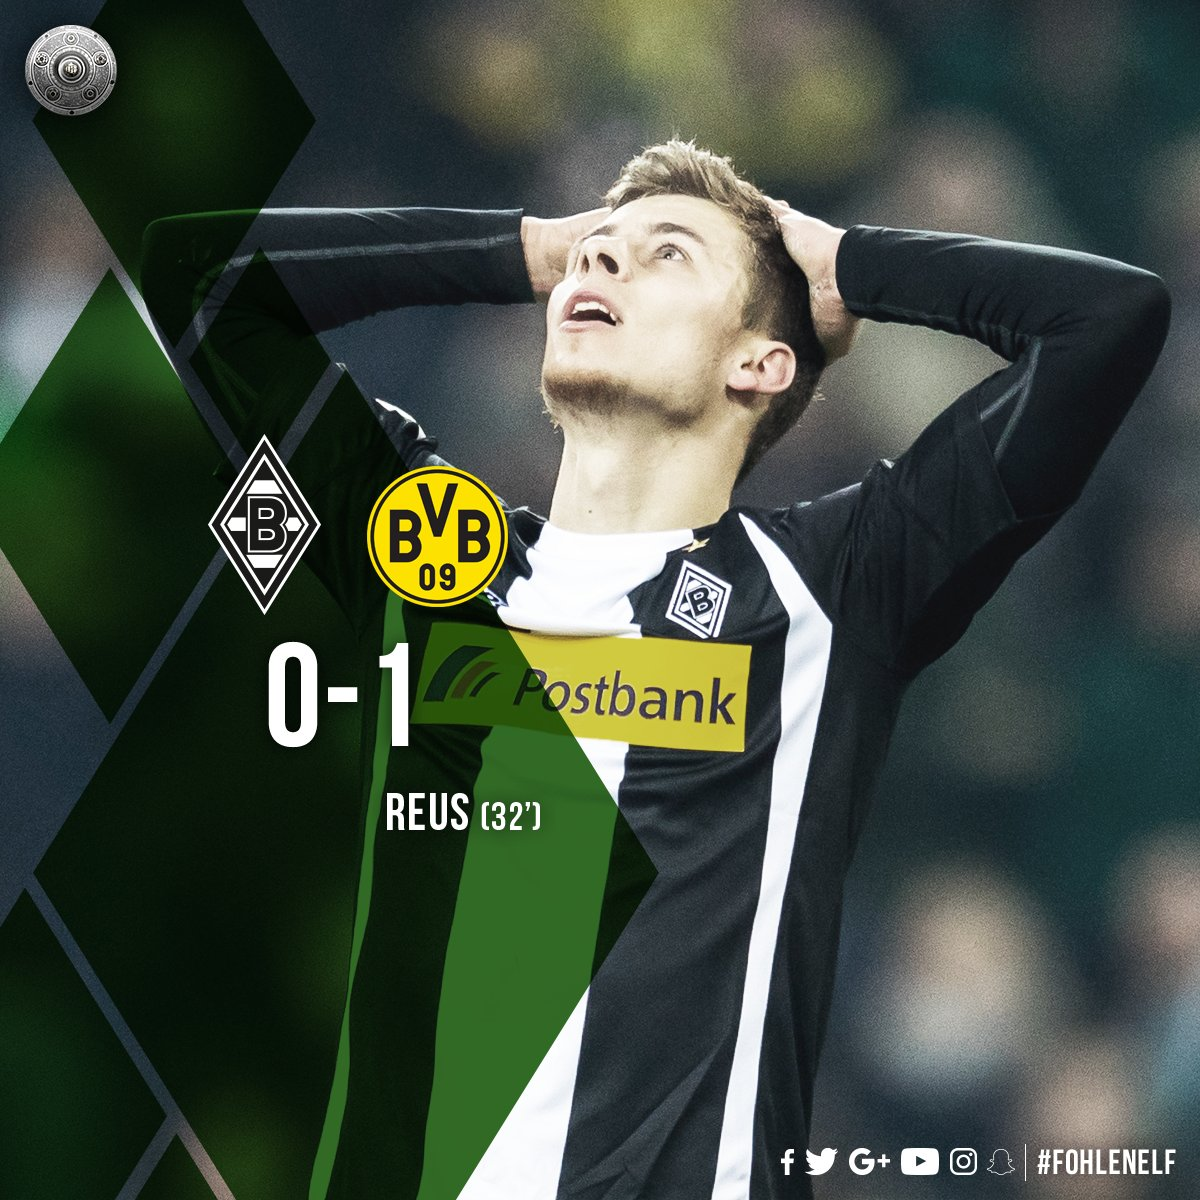 26... 26 shots... We're into cursed territory. The goals just won't come and it's another defeat 💔  #fohlenelf #BMGBVB 0-1 https://t.co/GMKG2empMc